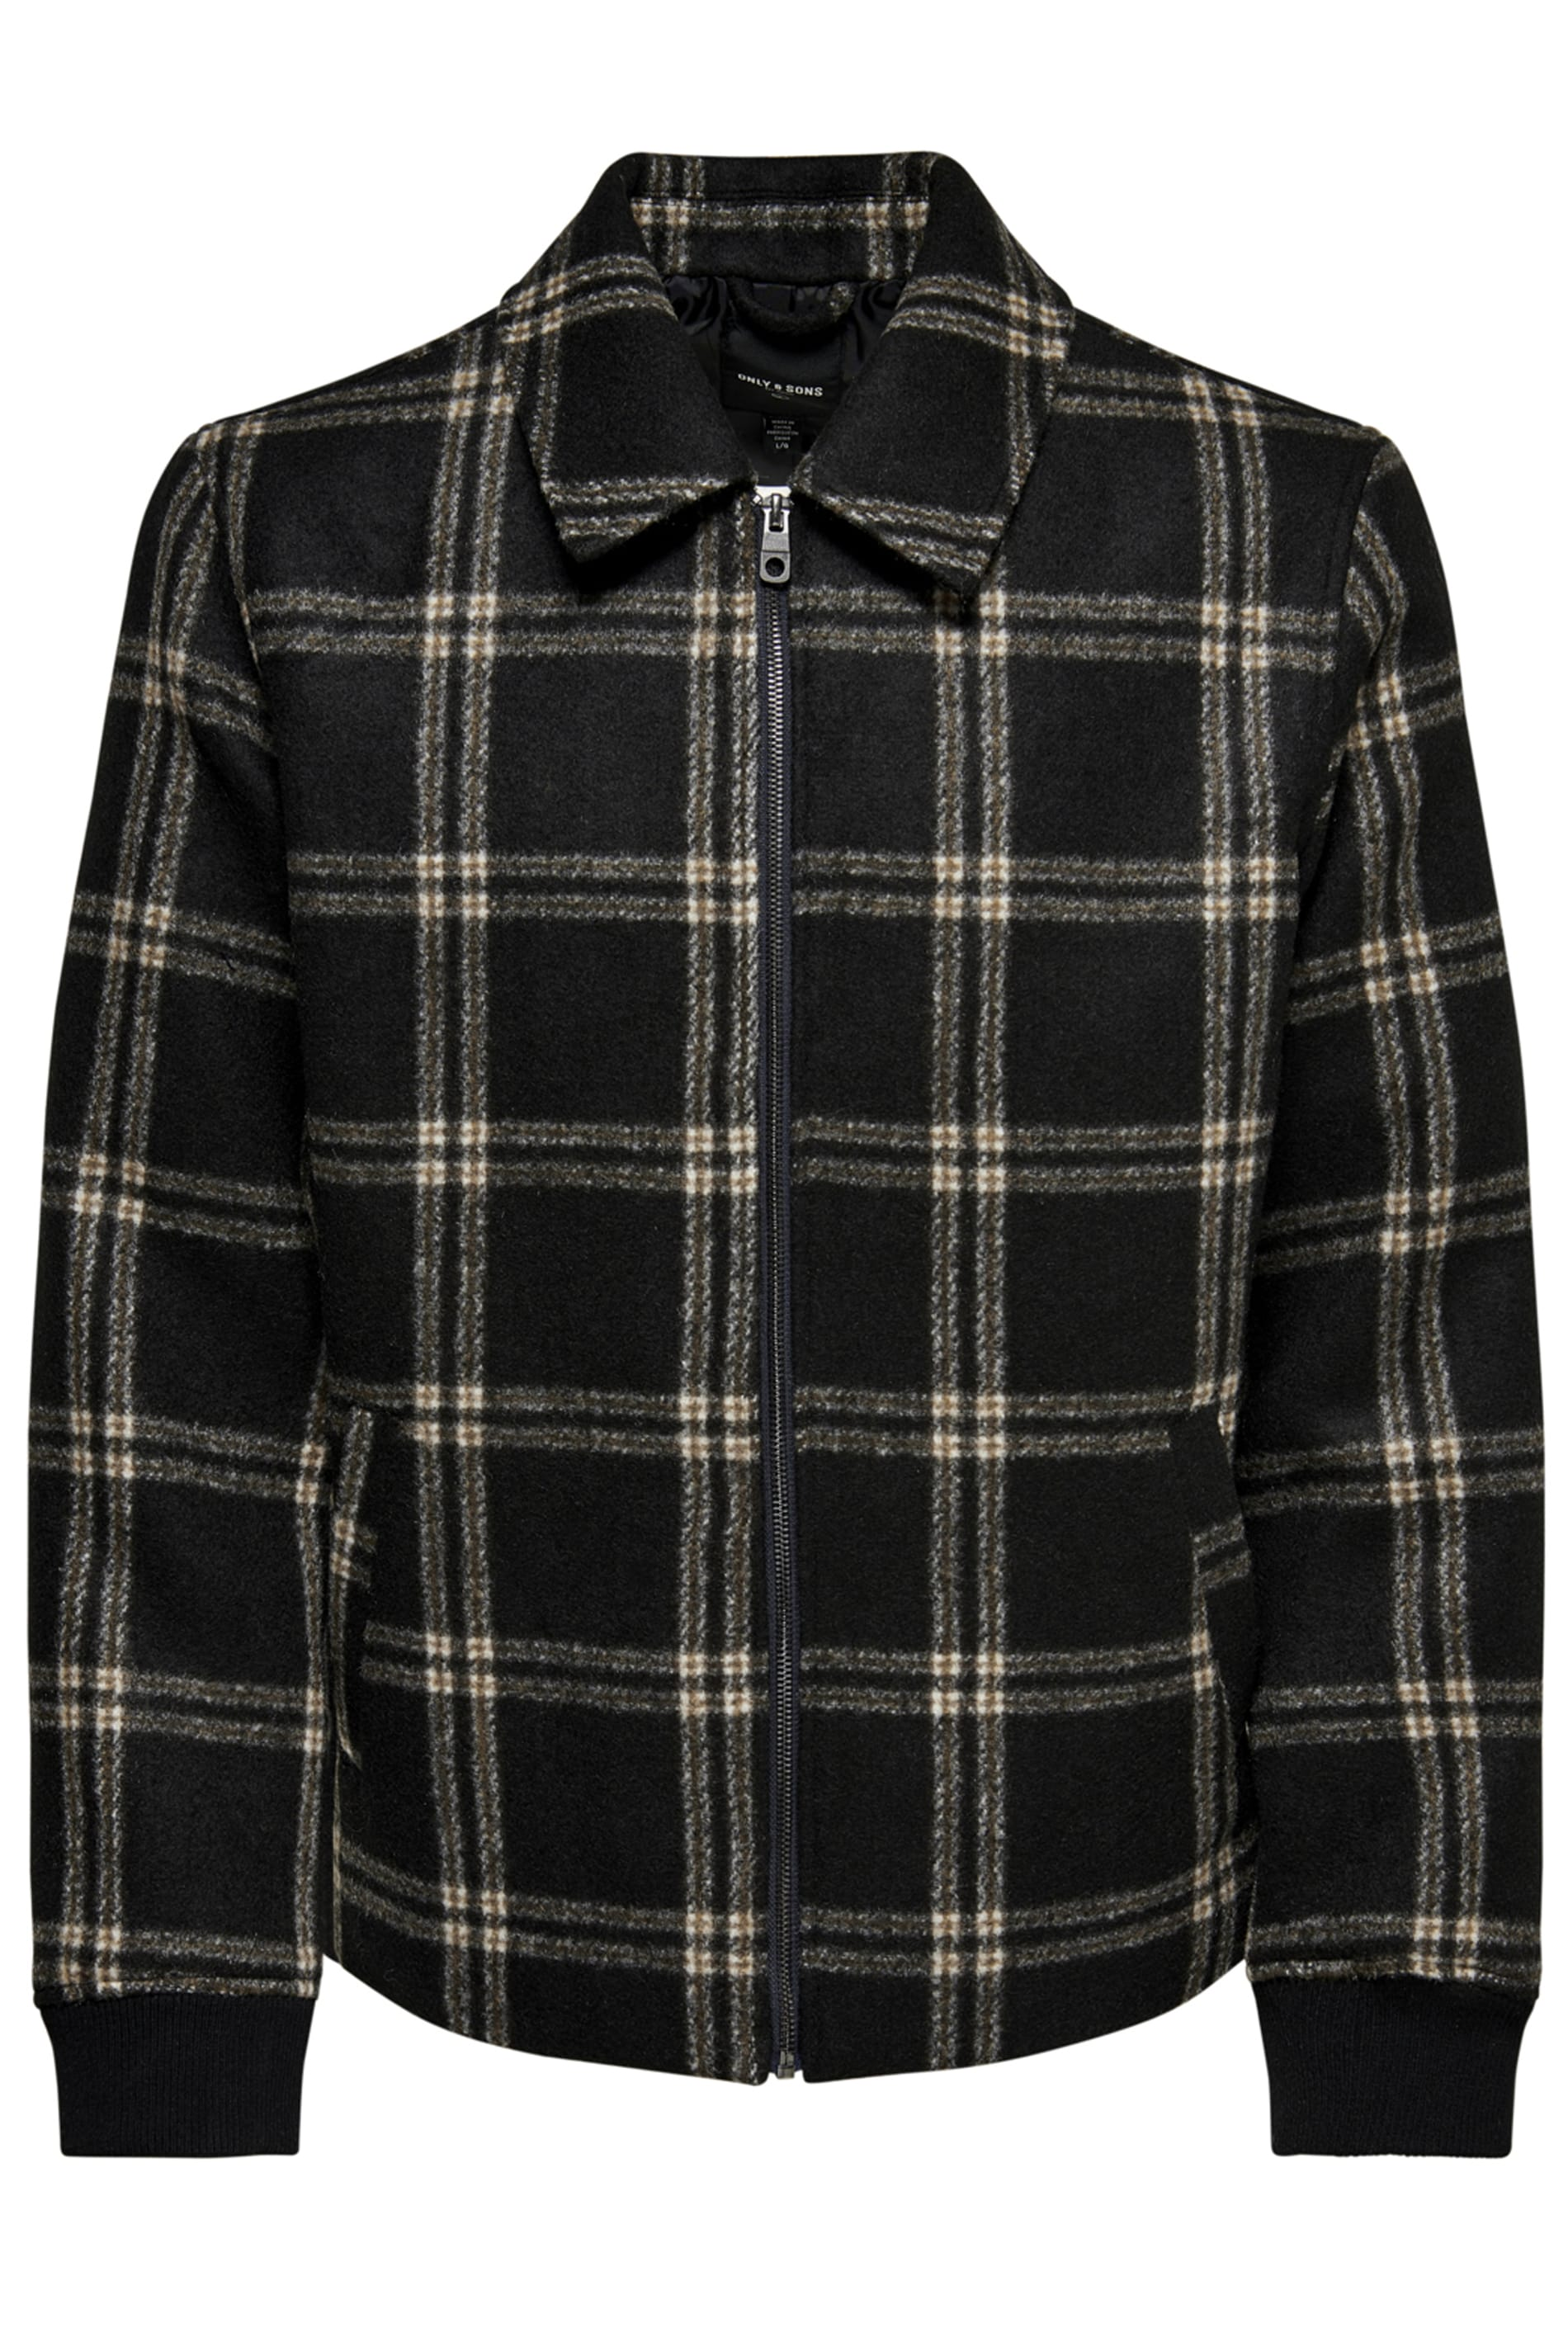 ONLY & SONS Brown Check Brushed Flannel Jacket